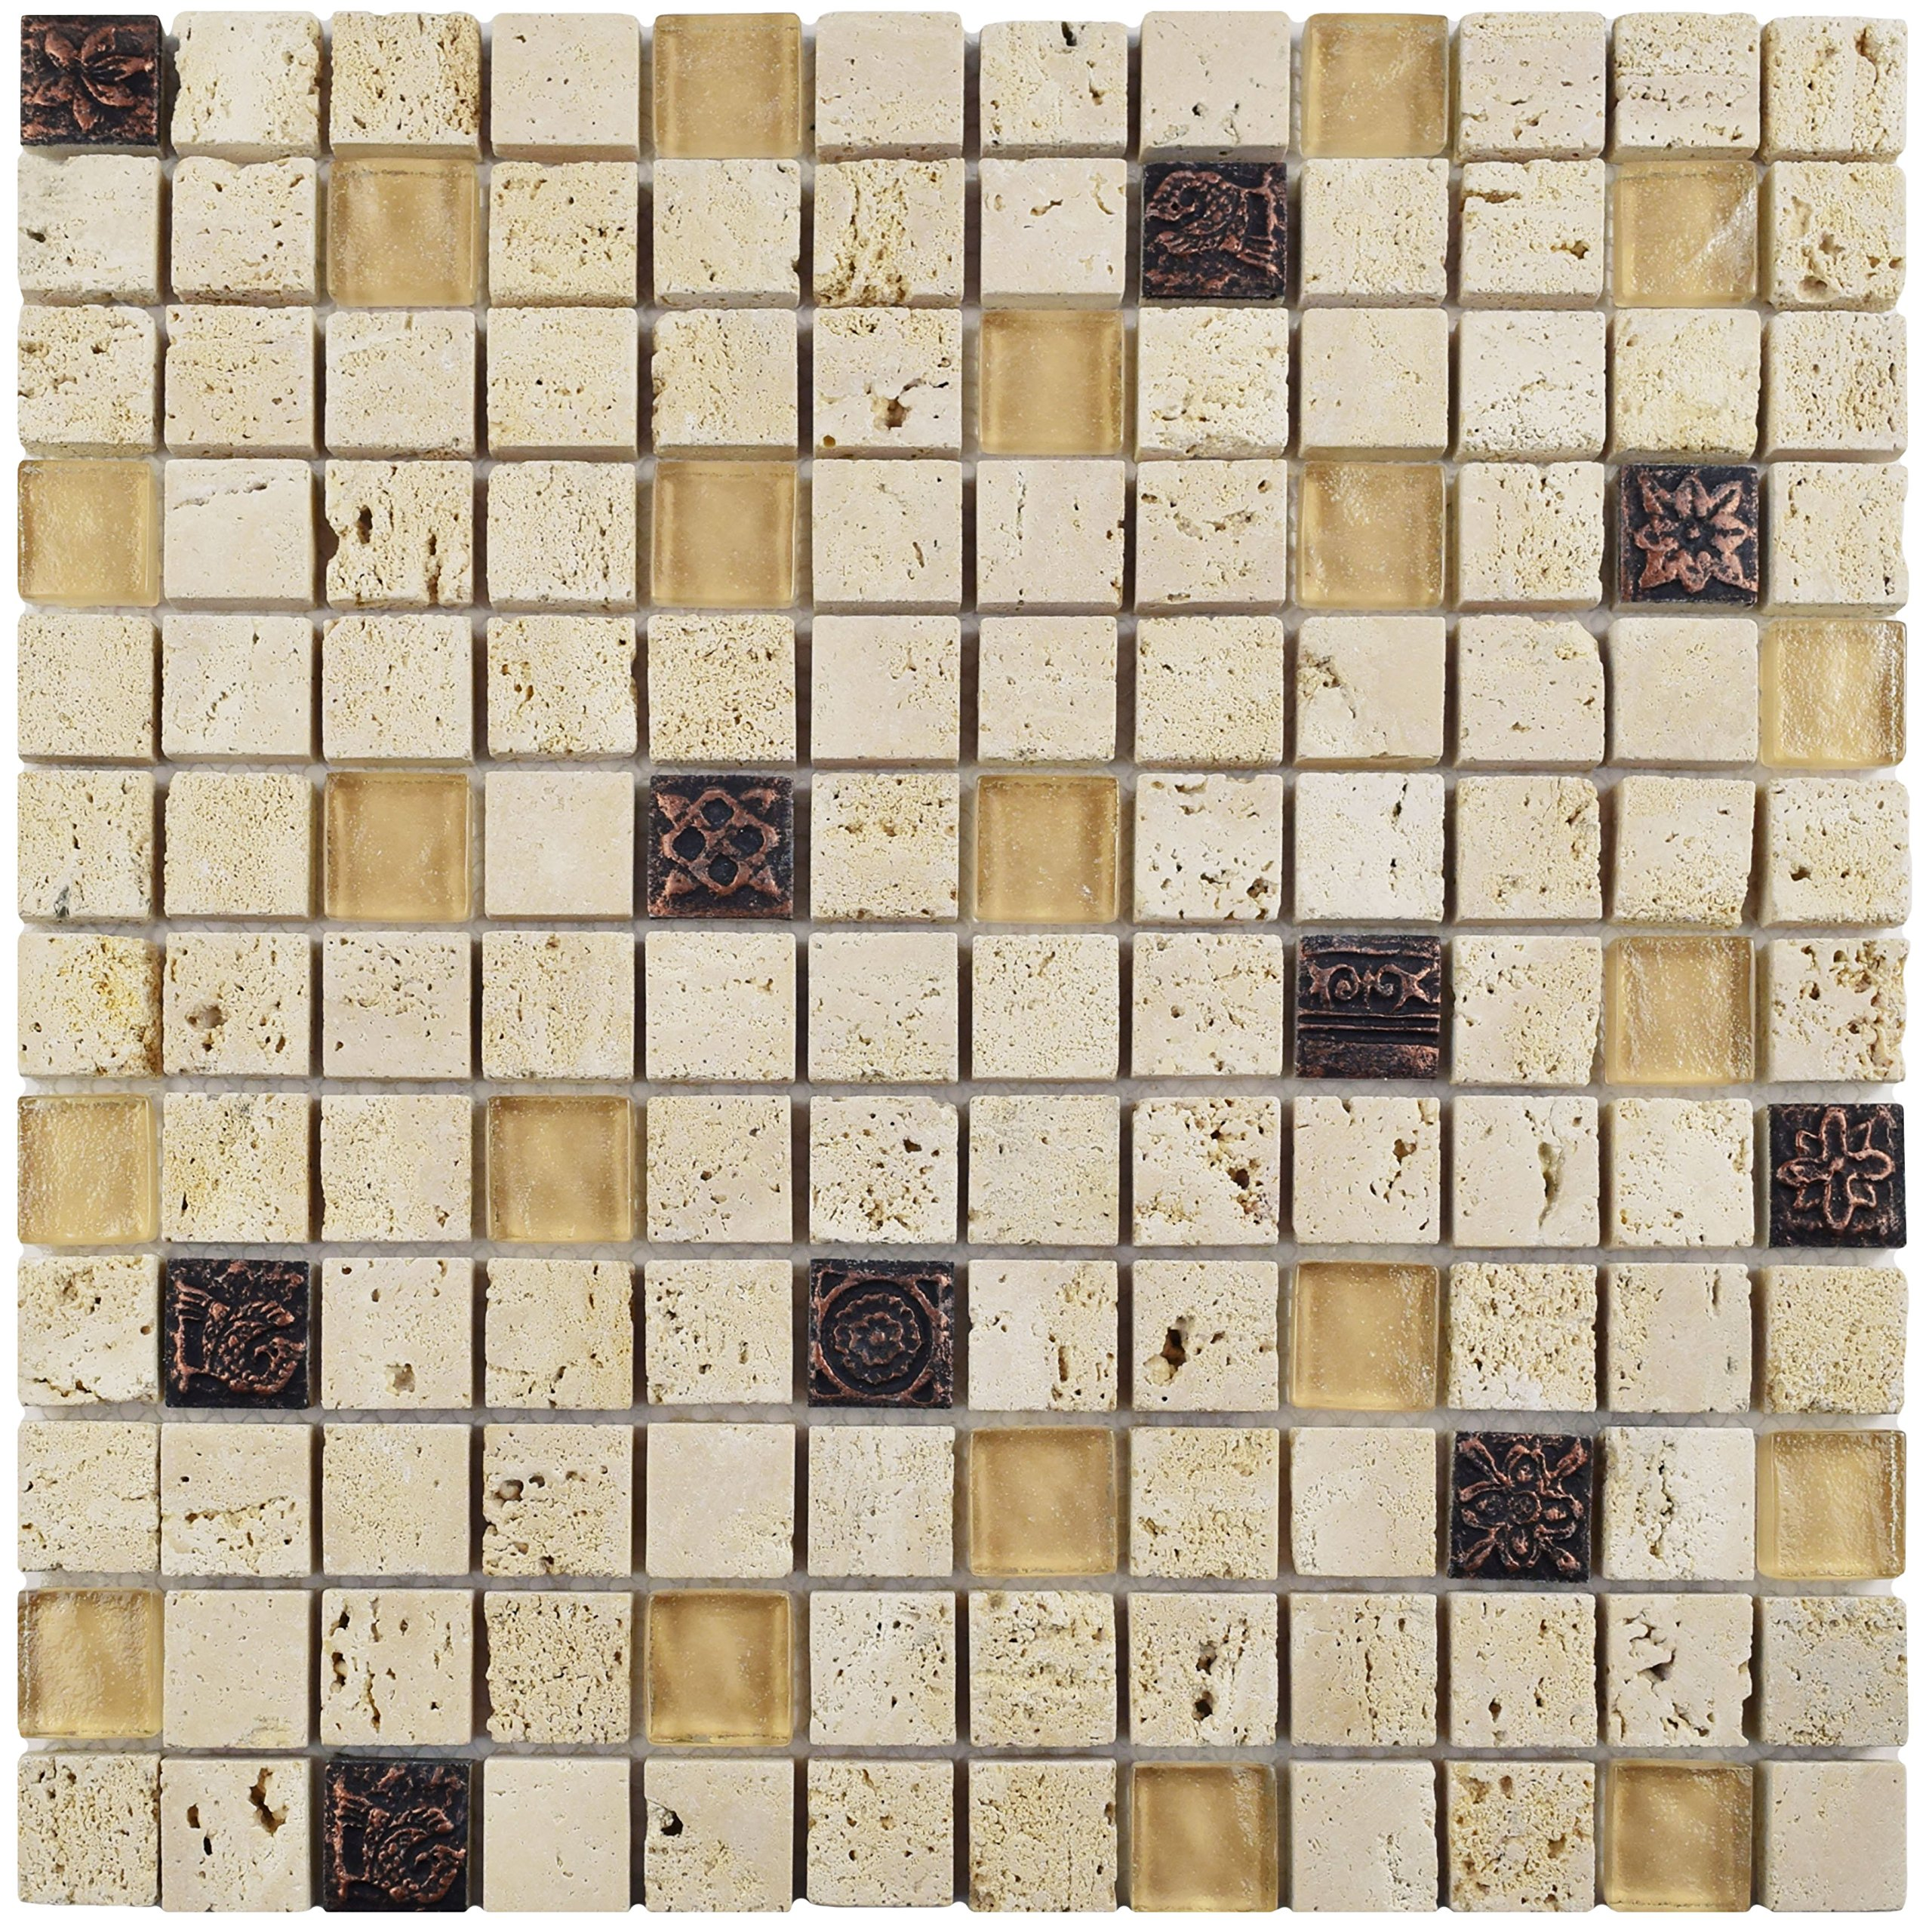 SomerTile GITCAGL Abbey Glouster Glass and Stone Mosaic Wall Tile, 12'' x 12'', Beige/Tan/Cream/Bronze/Metallic by SOMERTILE